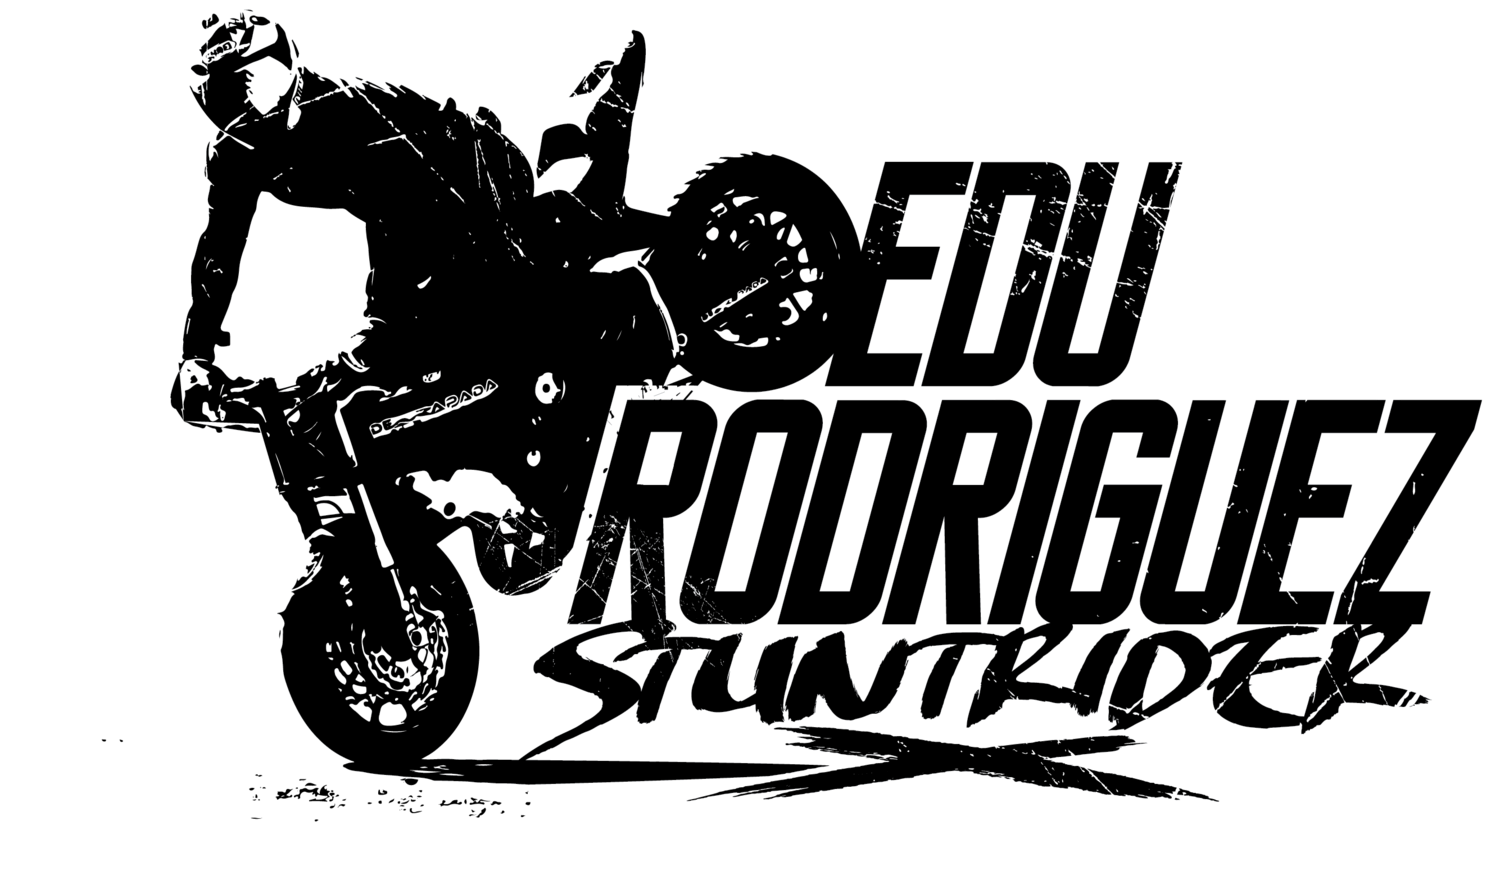 Edu Rodríguez STUNT RIDER | Professional Motorcycle Stunts Athlete